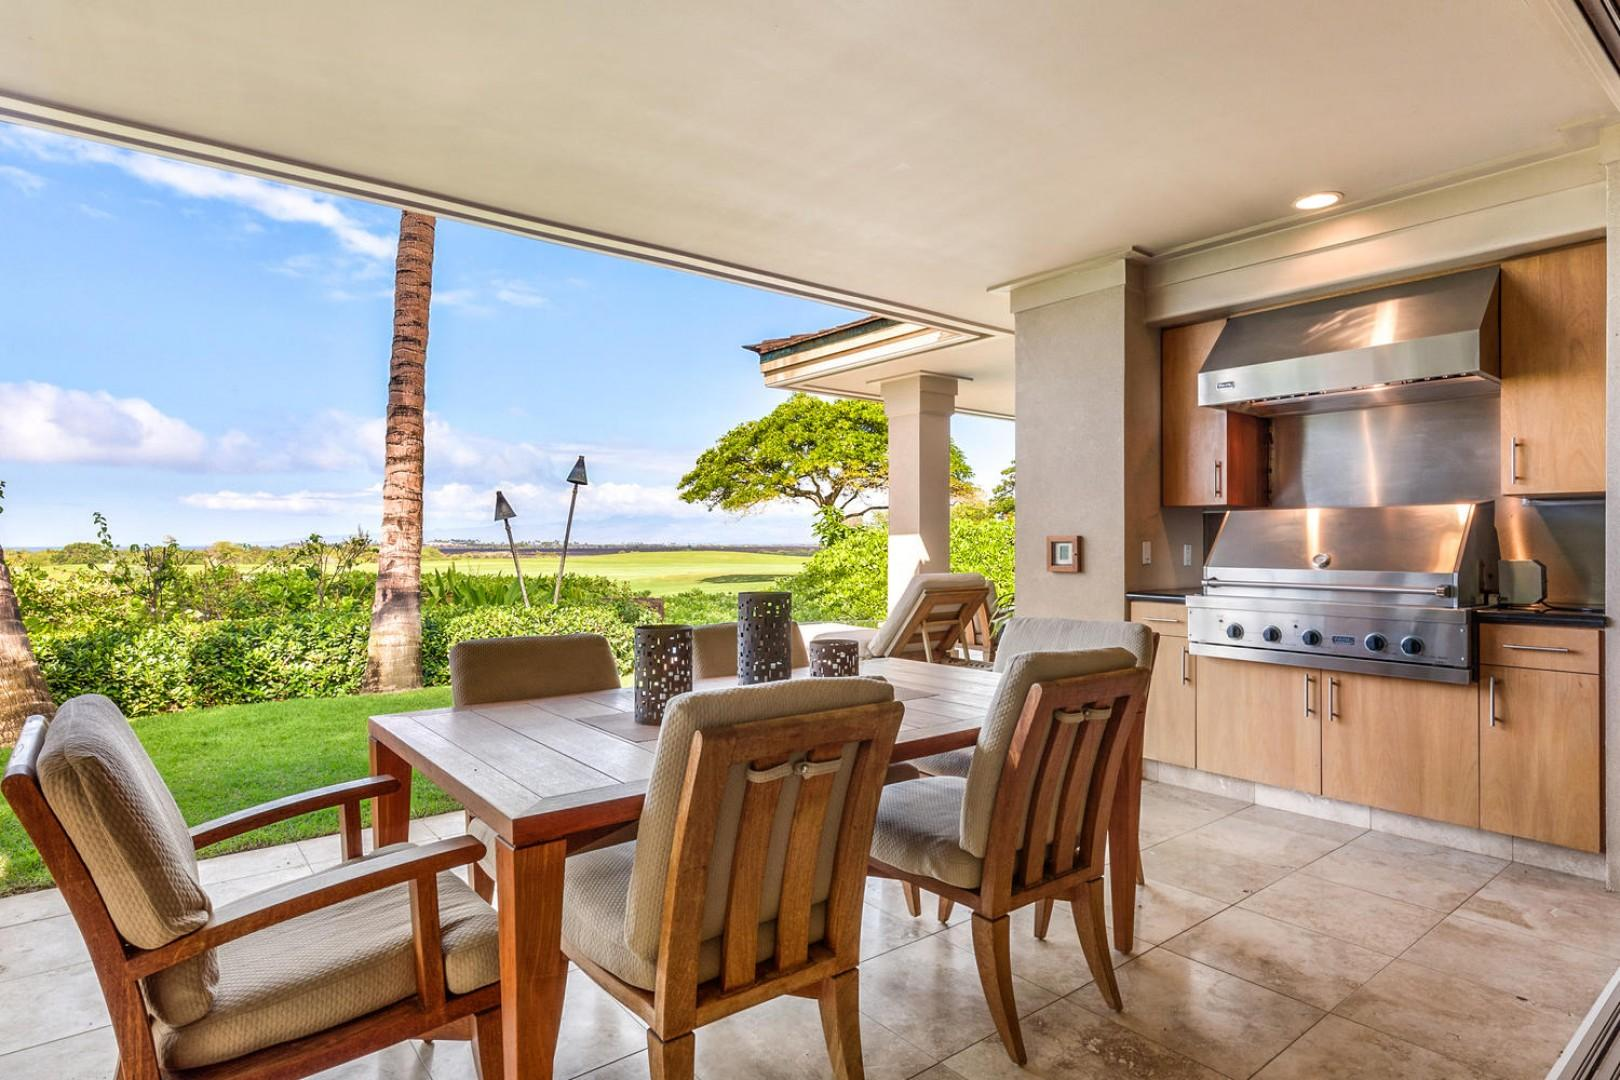 Plush outdoor dining for six with large built-in barbecue grill, perfect for our endless Hawaiian summer evenings.